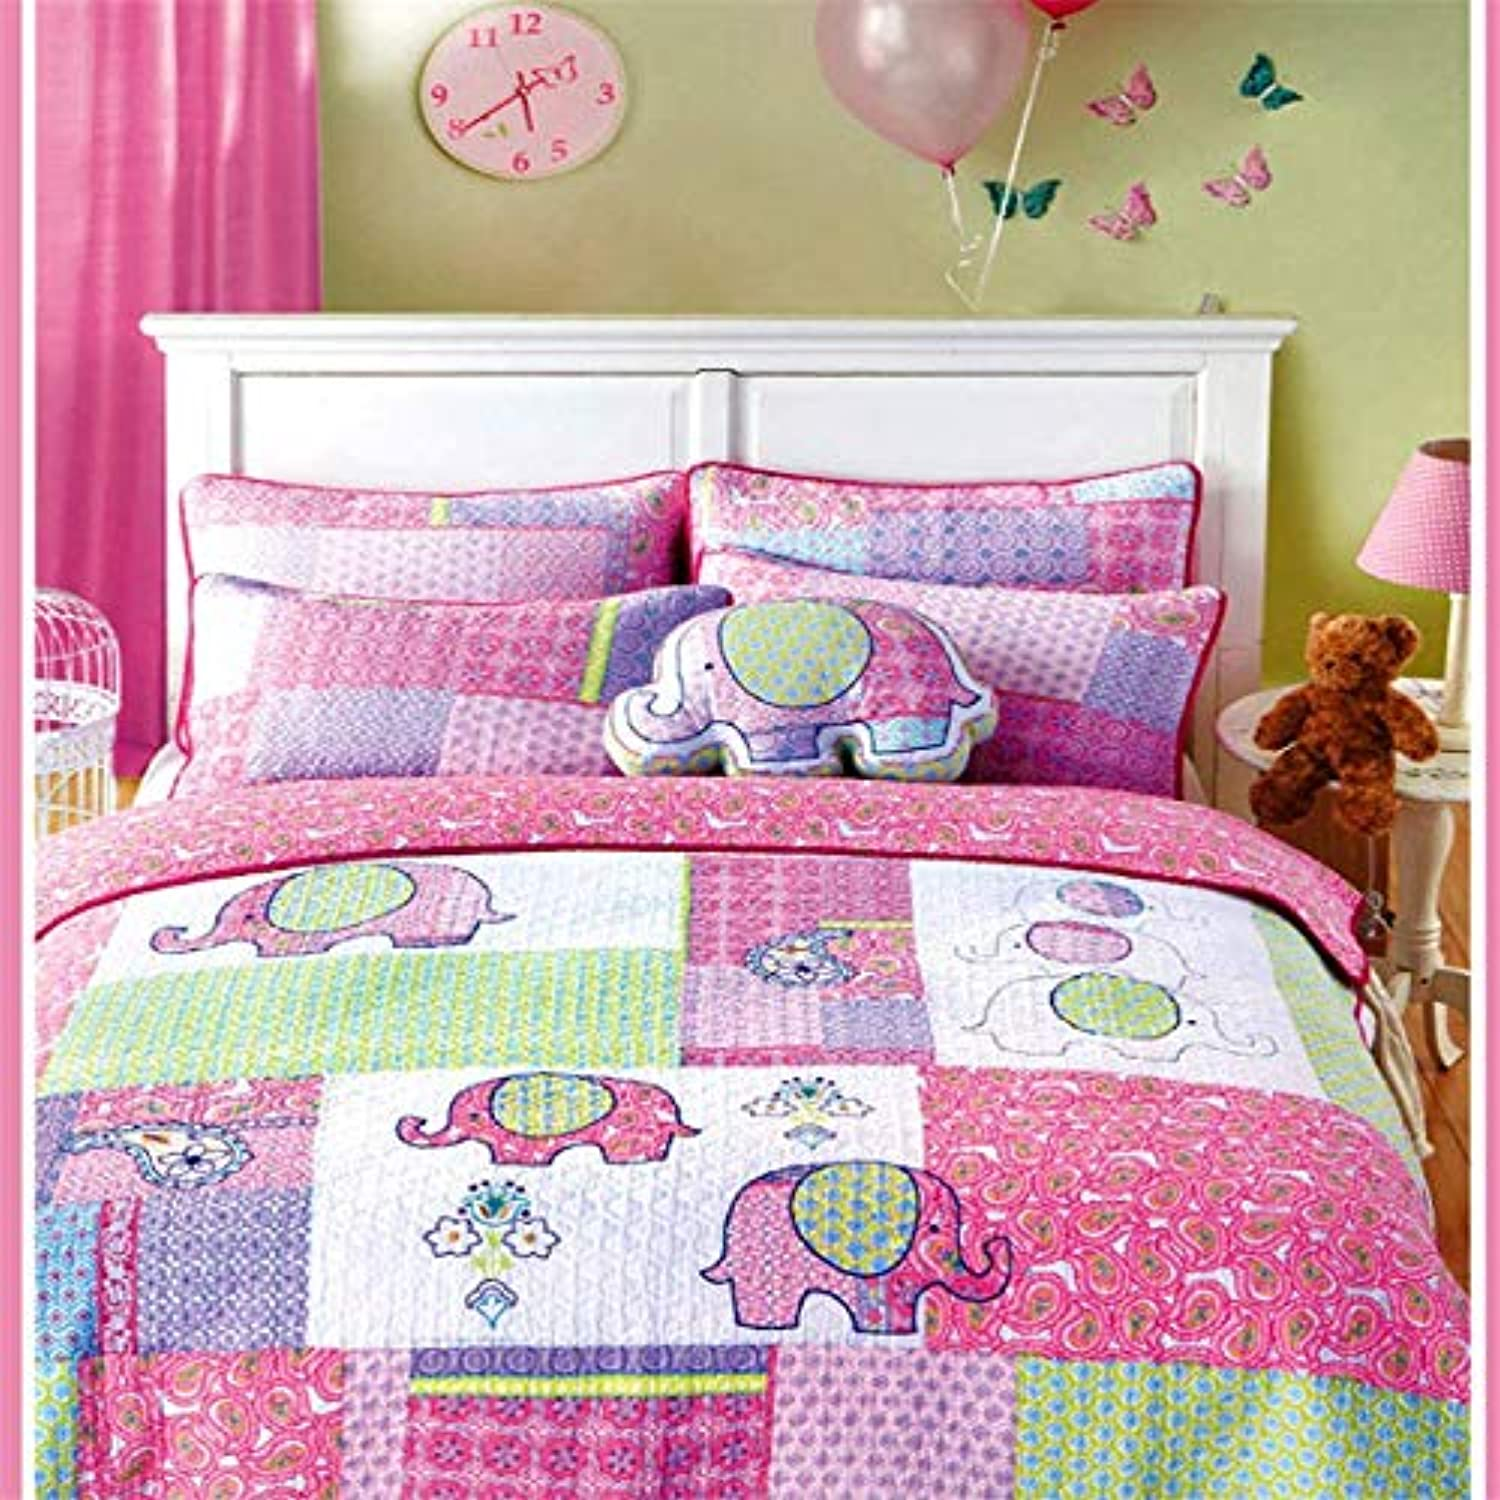 Auvoau 100% Cotton Girls Kids Quilt Bedspread Set Queen Size 3 Pieces Elephant Pattern Patchwork Fabric Girls Kids Comforter Bedding Sets